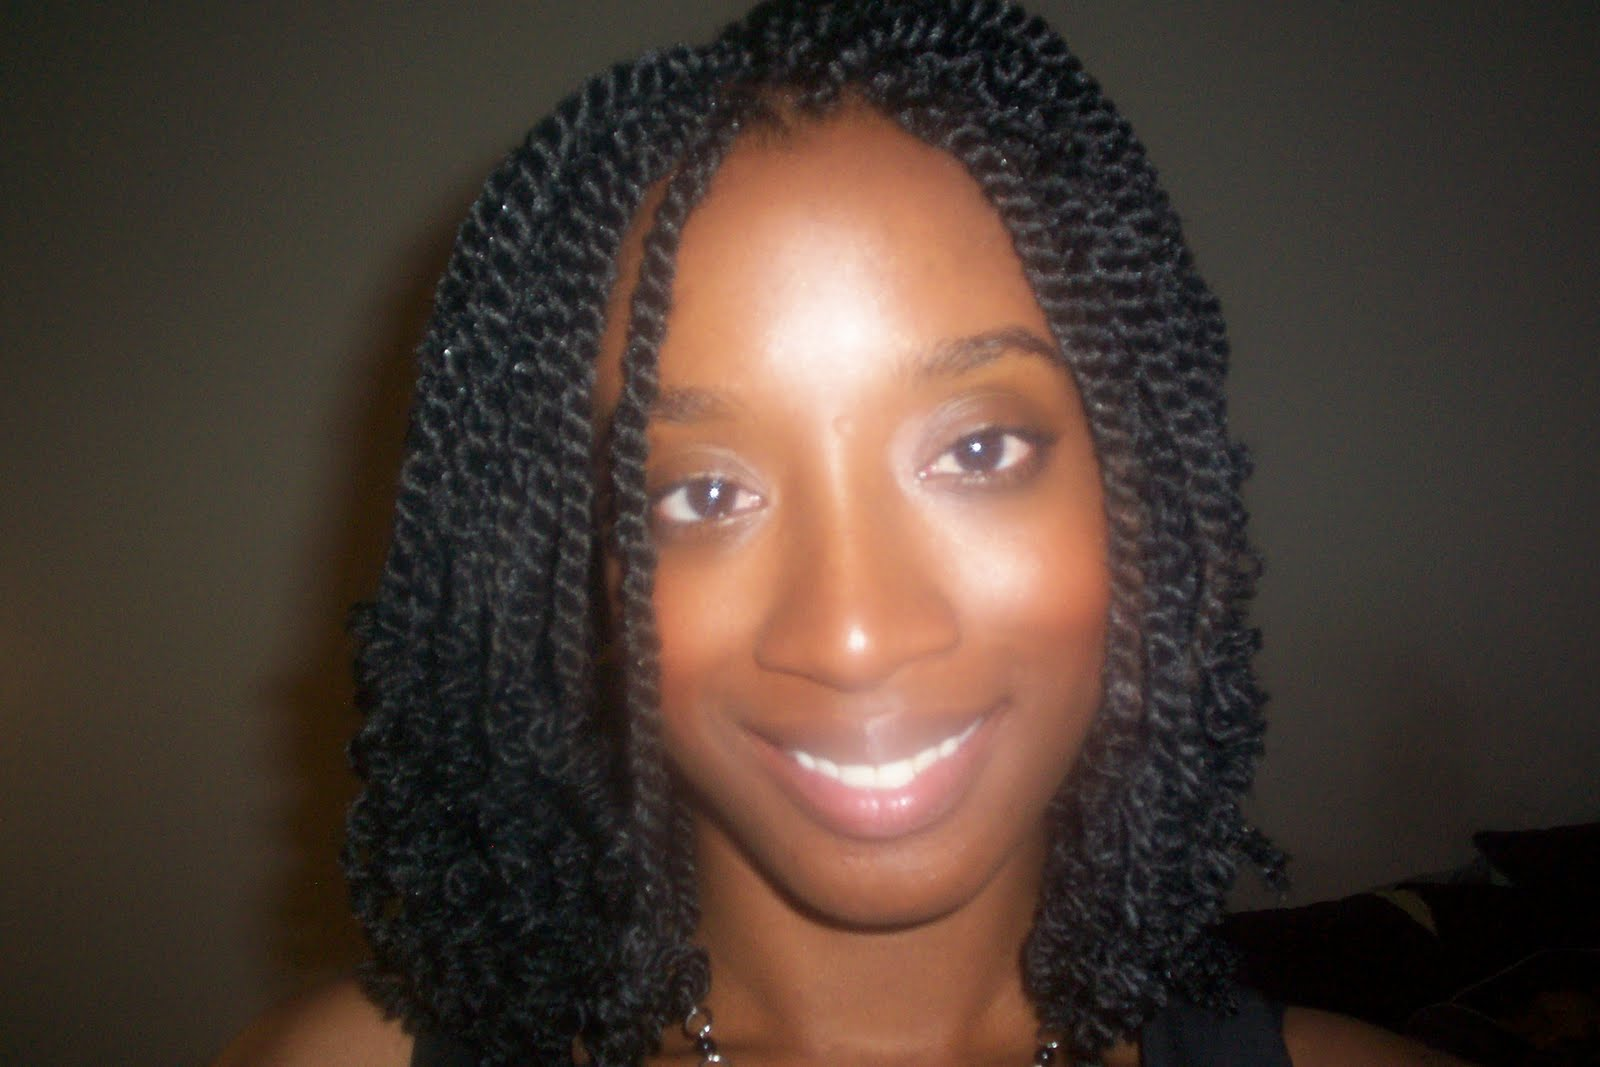 Micro Kinky Twists http://theawkwardstage-se.blogspot.com/2010/05/selecting-right-braid-style-for-you.html